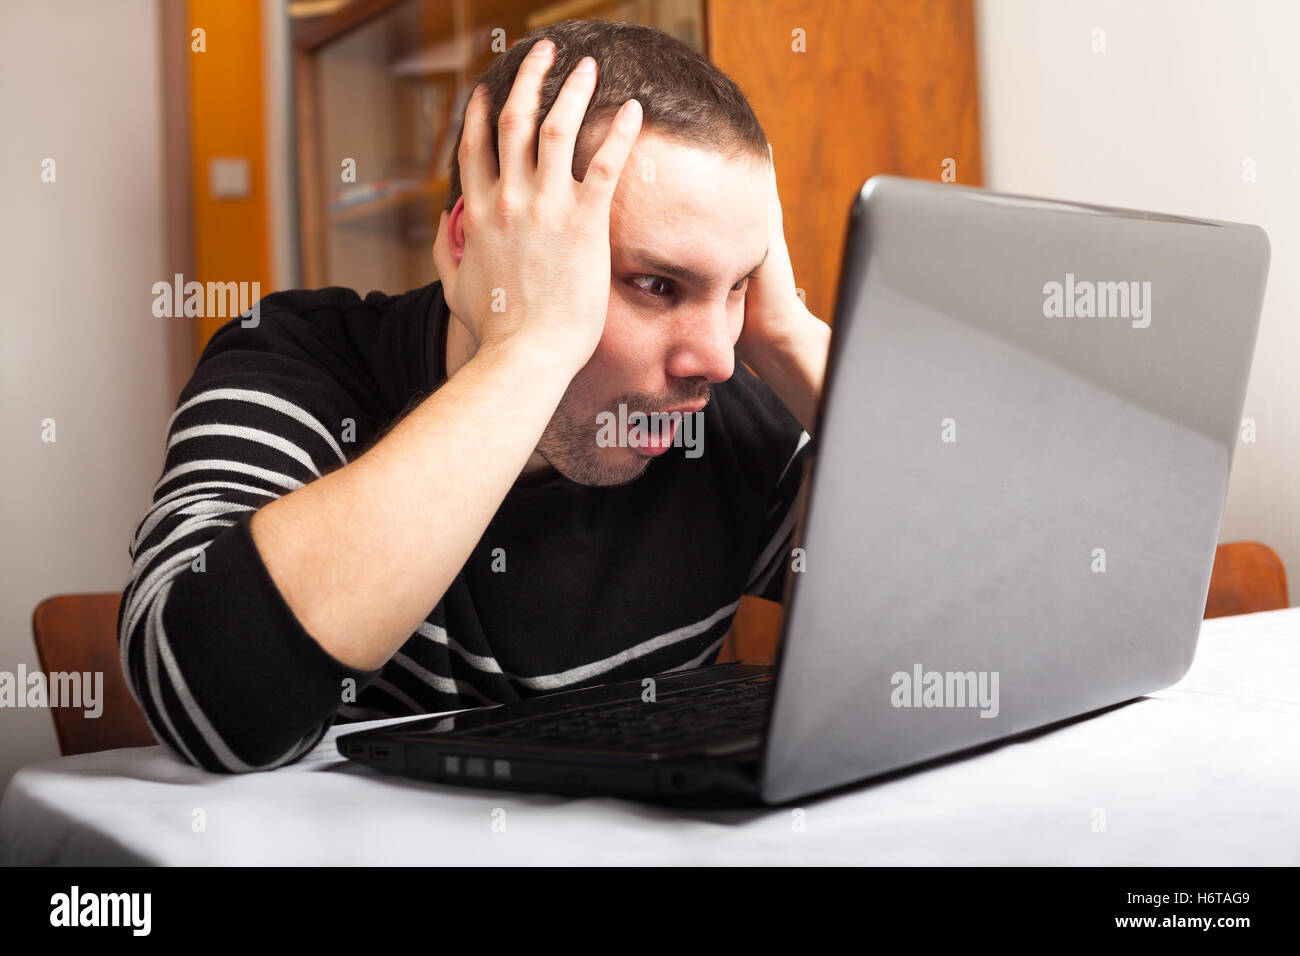 humans human beings people folk persons human human being laptop notebook computers computer men man PC inside lifestyle - Stock Image